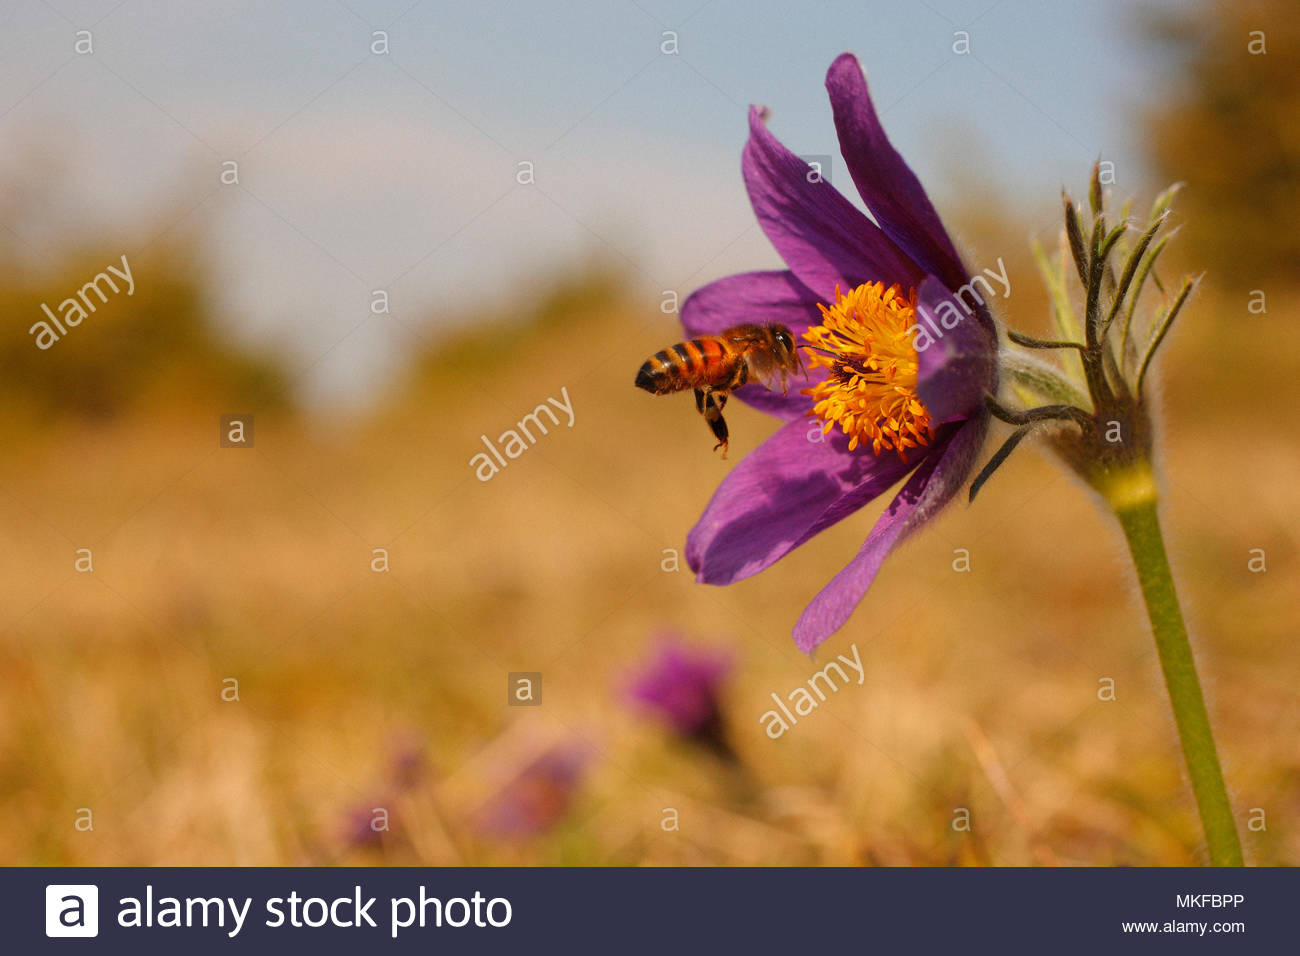 Honey bee (Apis mellifera) foraging a Pasque flower (Pulsatila vulgaris) on a limestone hill in the spring, in March, Picardie, France. Mountain Fignières - Natural site protected by the Conservatory of natural areas of Picardy. - Stock Image